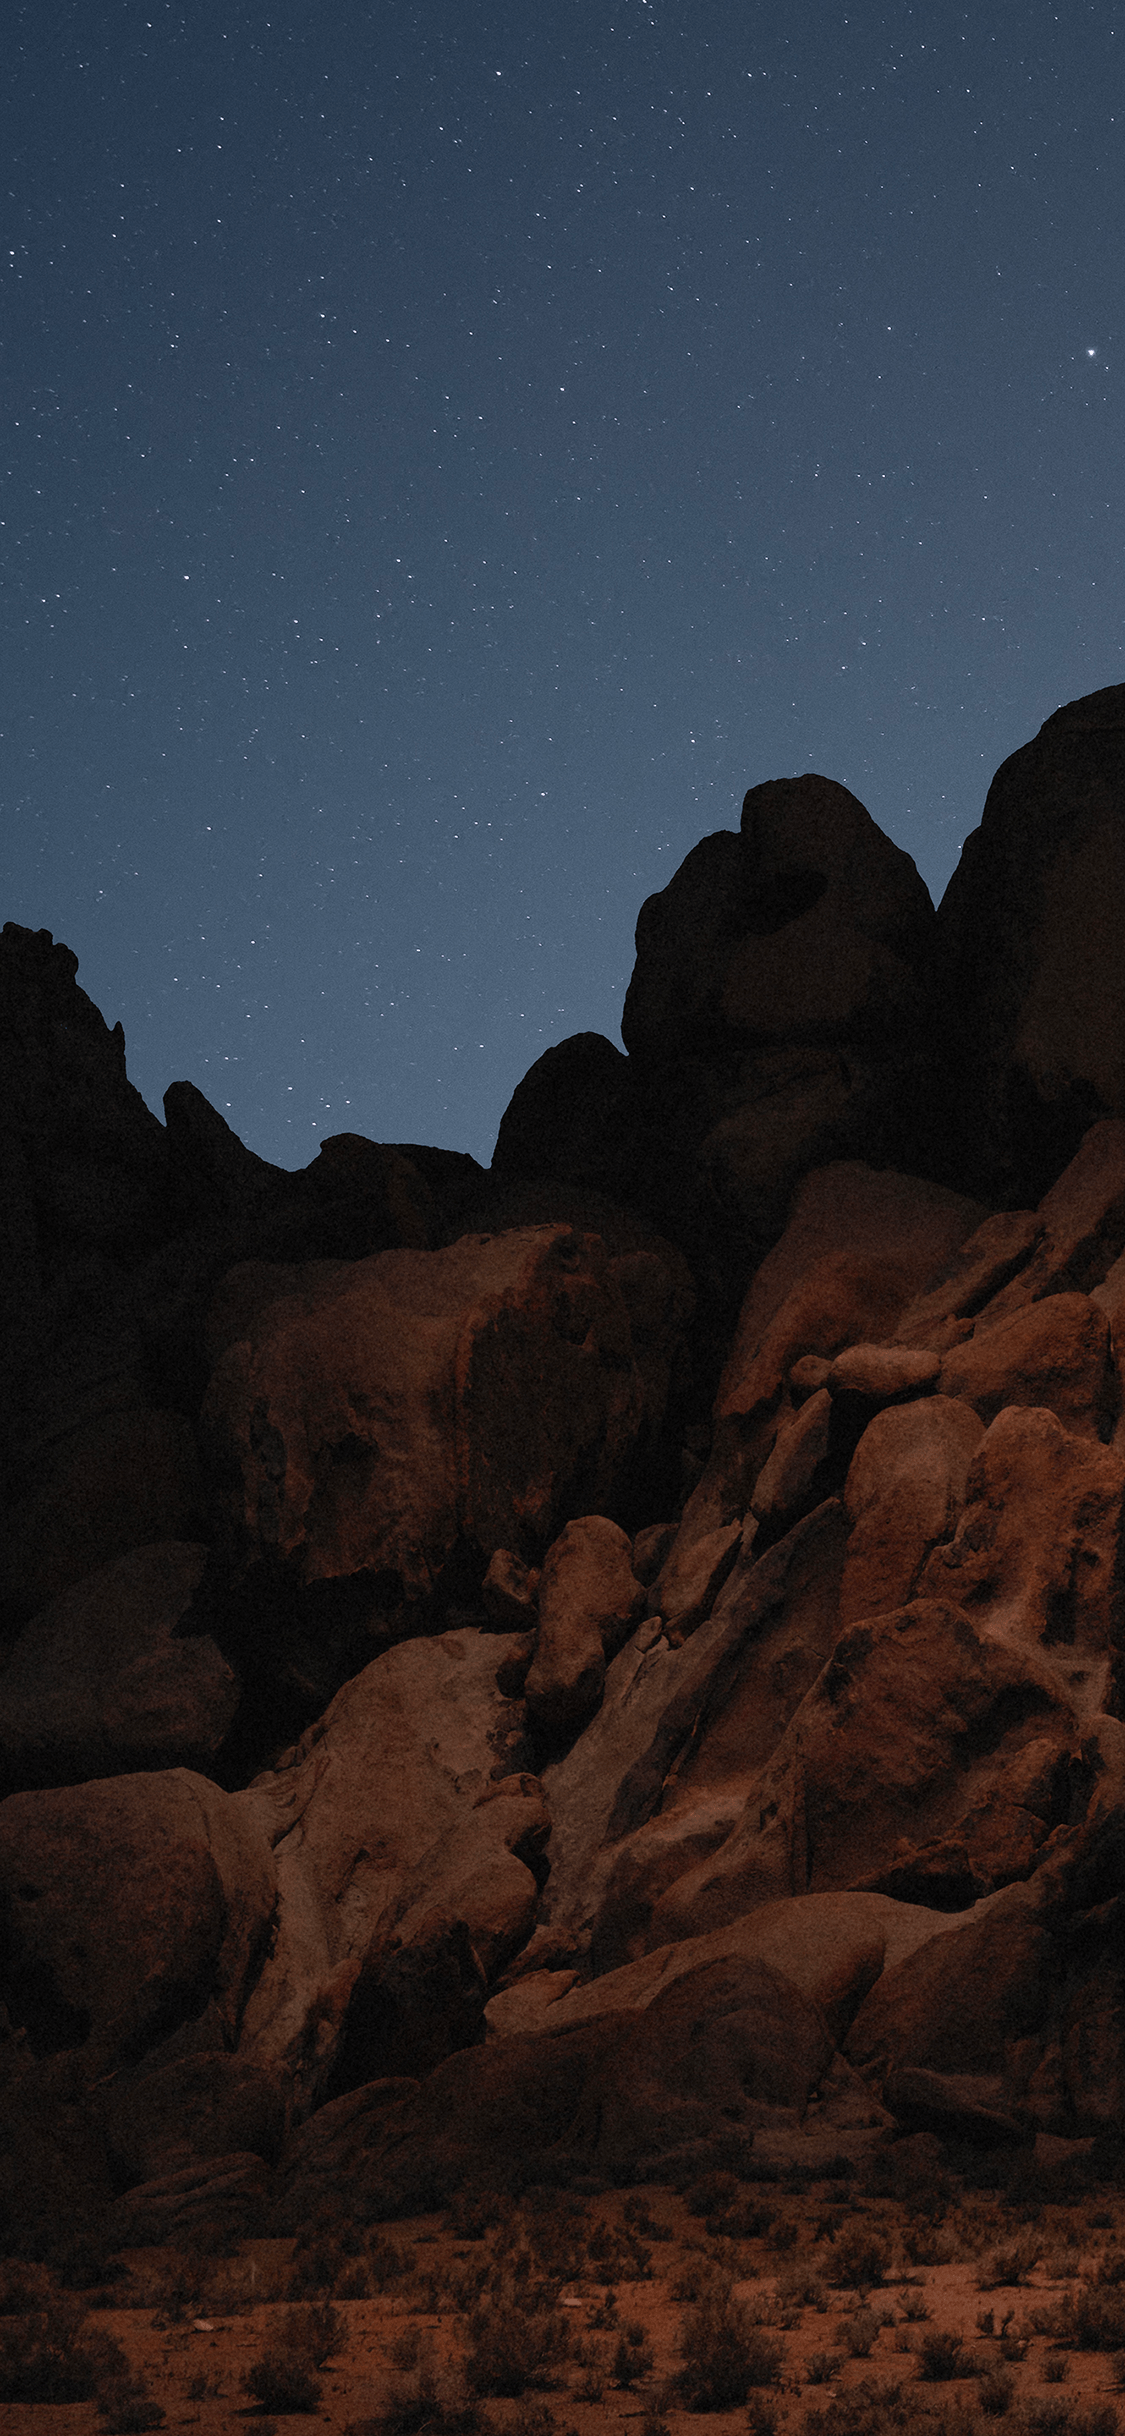 Download unsplash wallpapers for macos 10.12 or later and enjoy it on your mac. Every Macos Mojave Wallpaper For Iphone